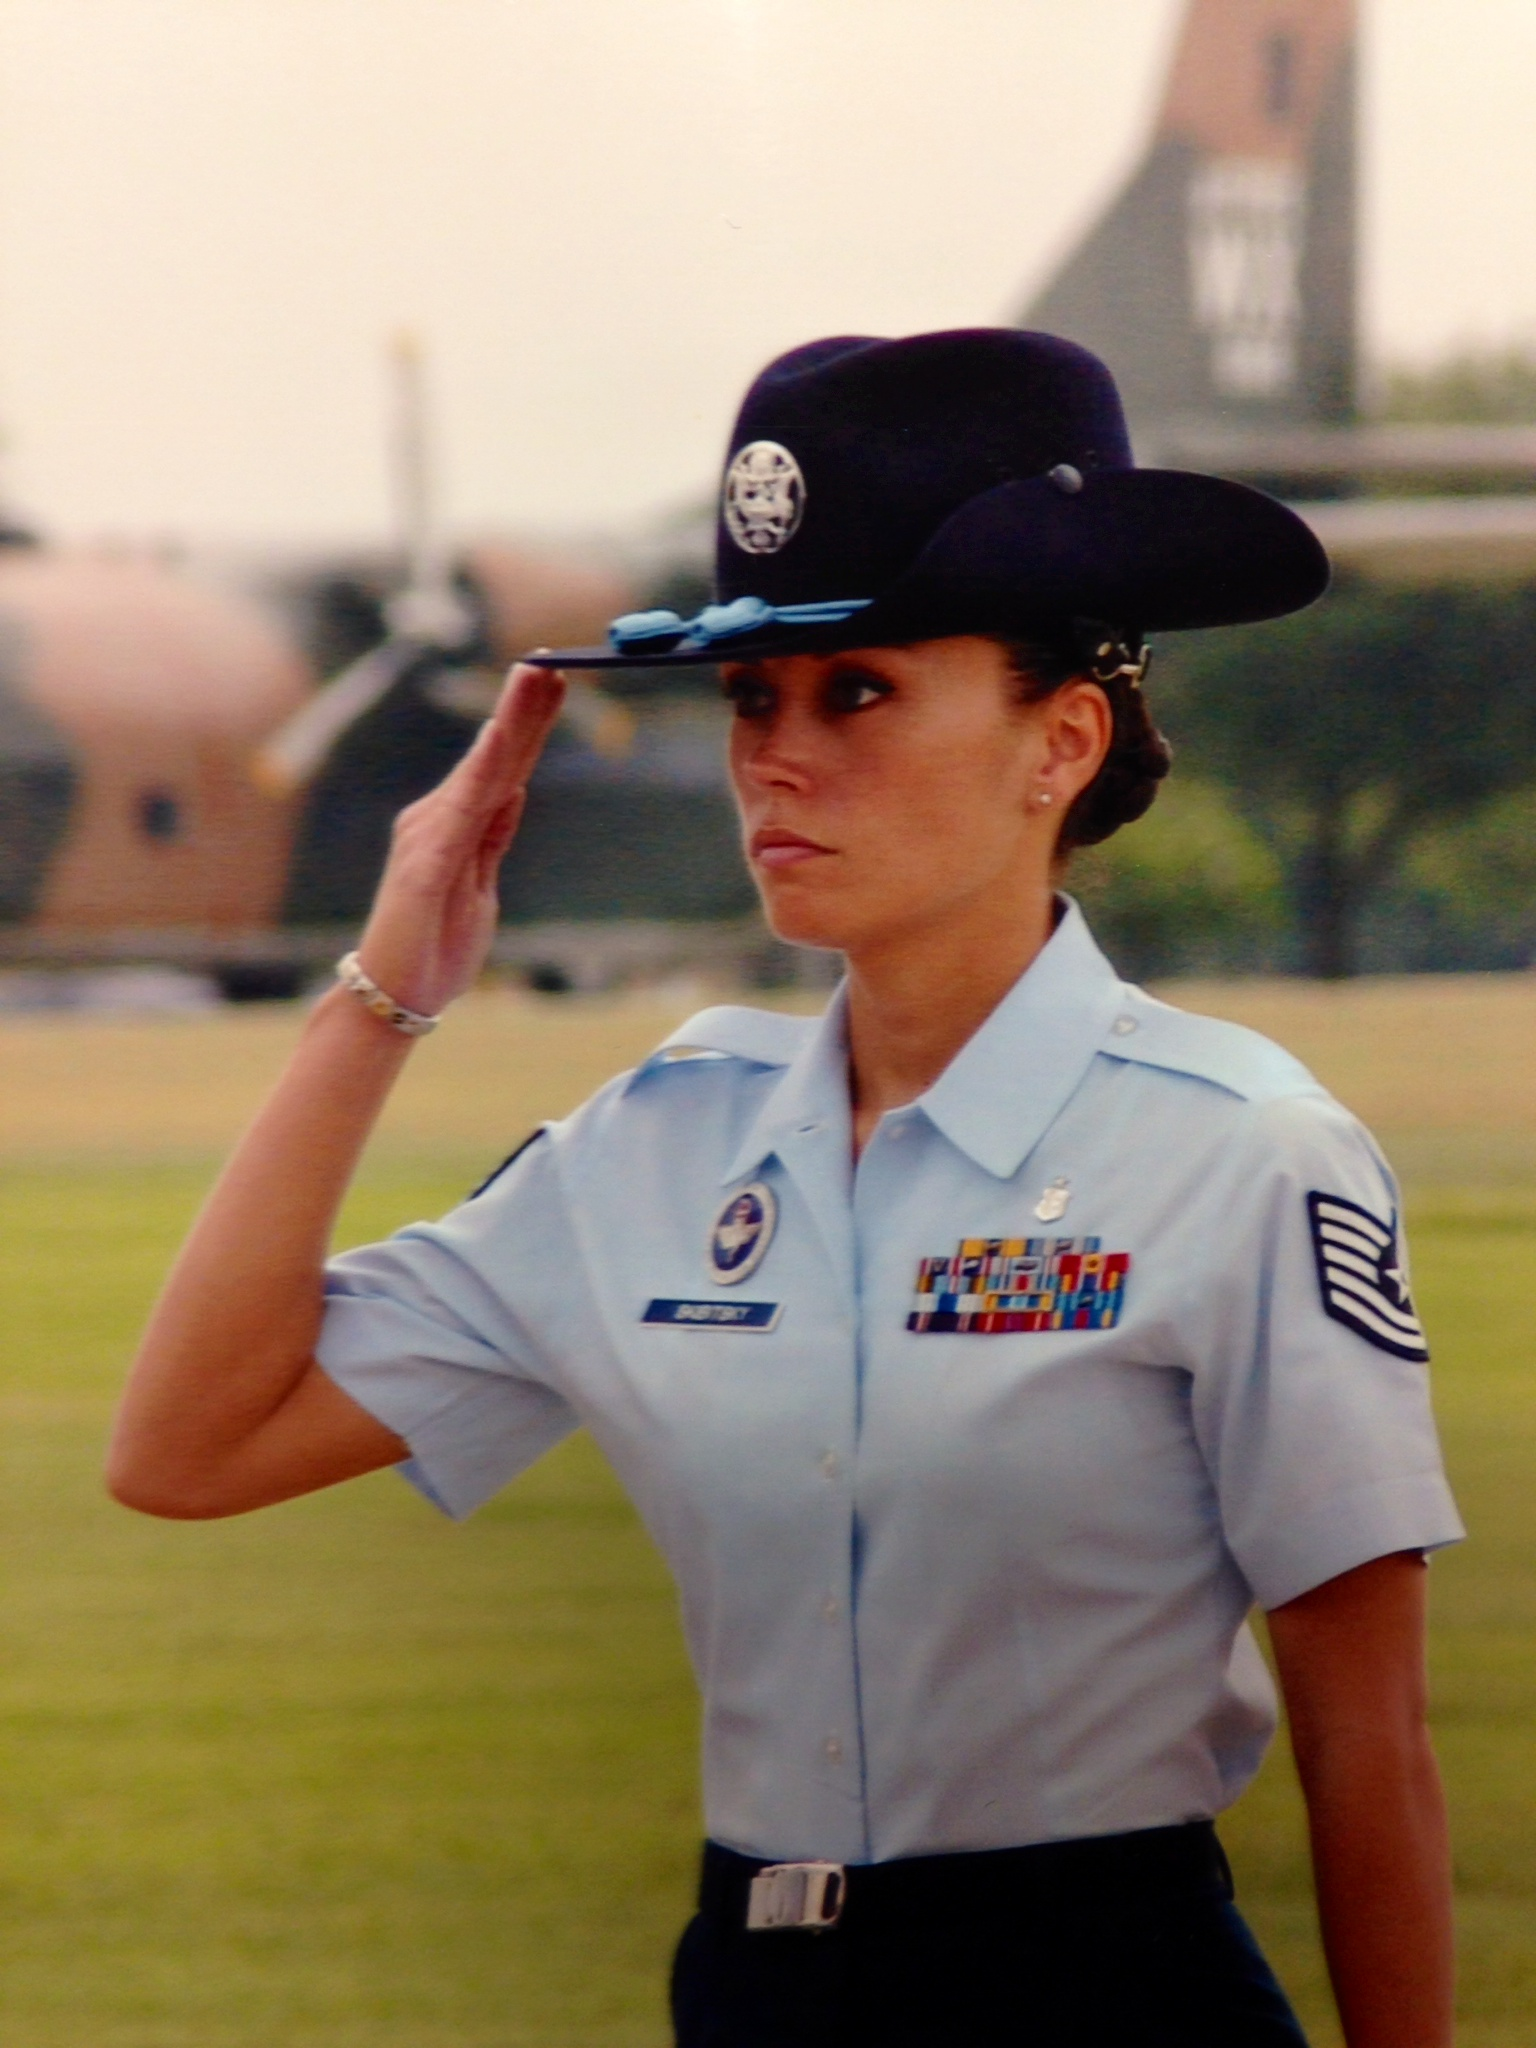 Celebrity Nude Air Force Sergeant Picture Images